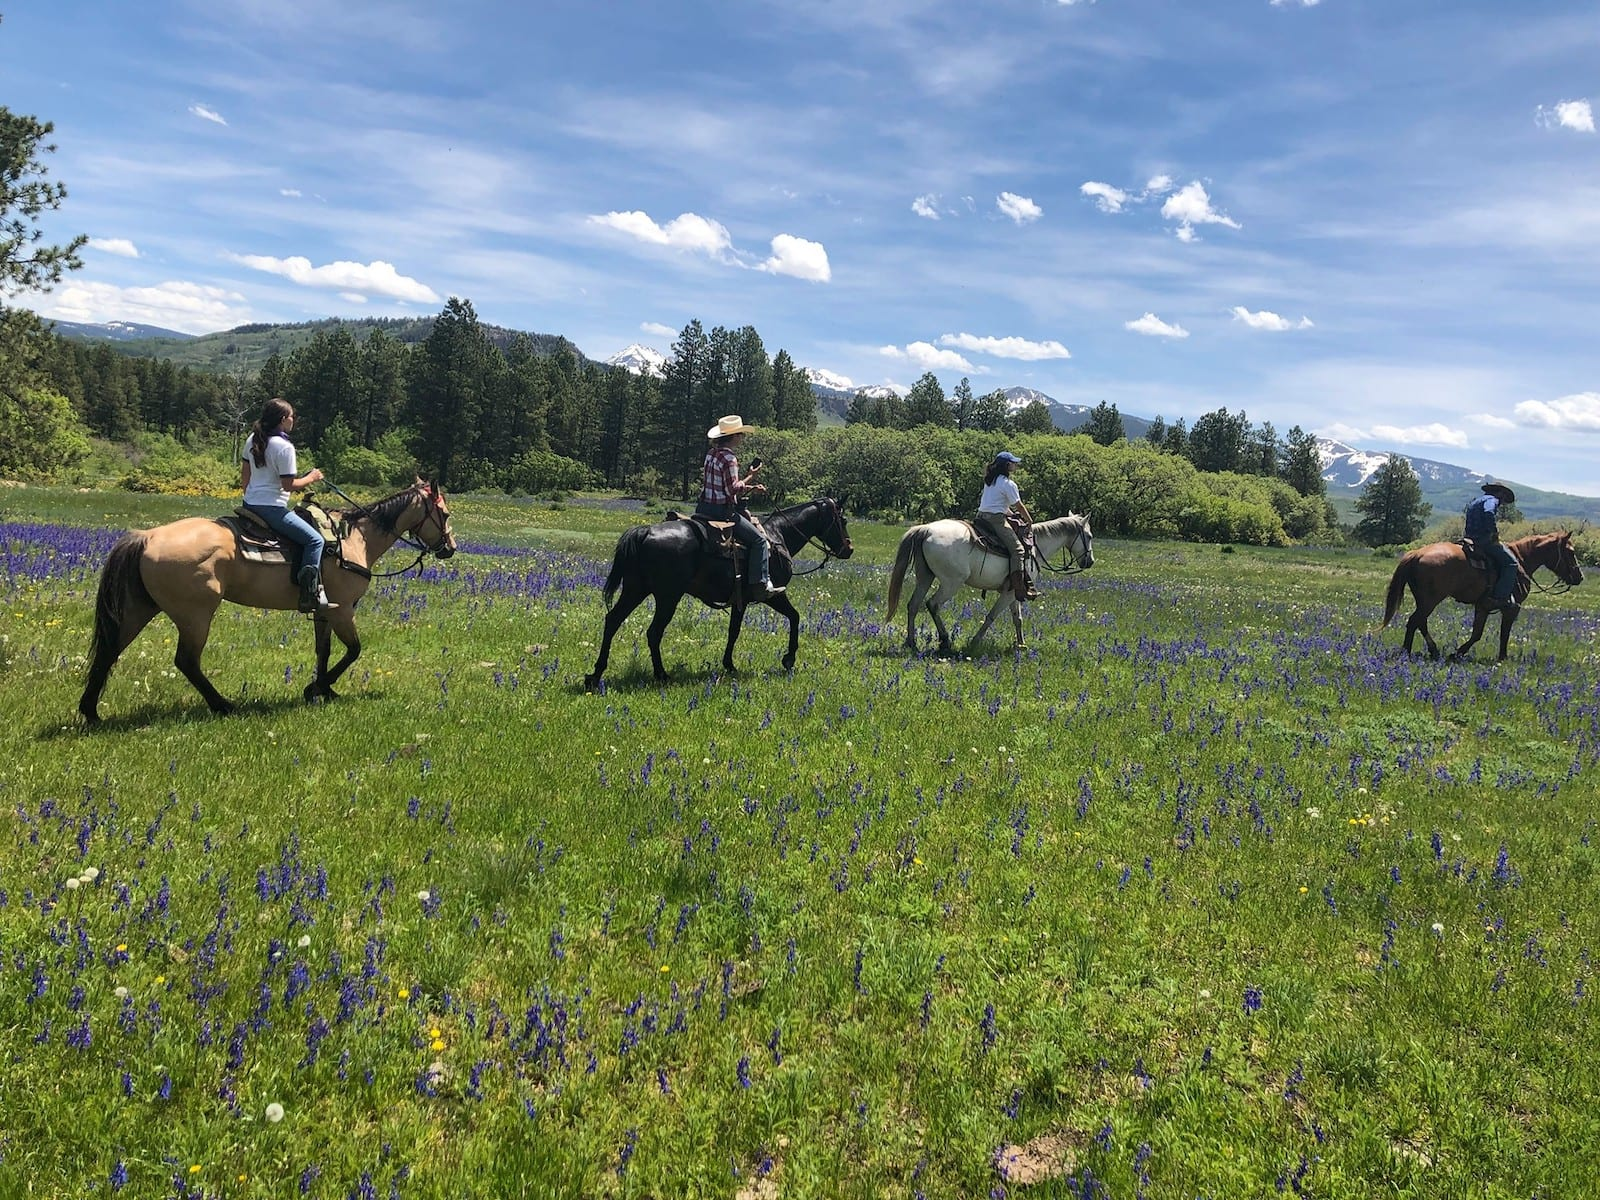 Image of 4 people riding horses in a flower covered field at Majestic Dude Ranch, CO